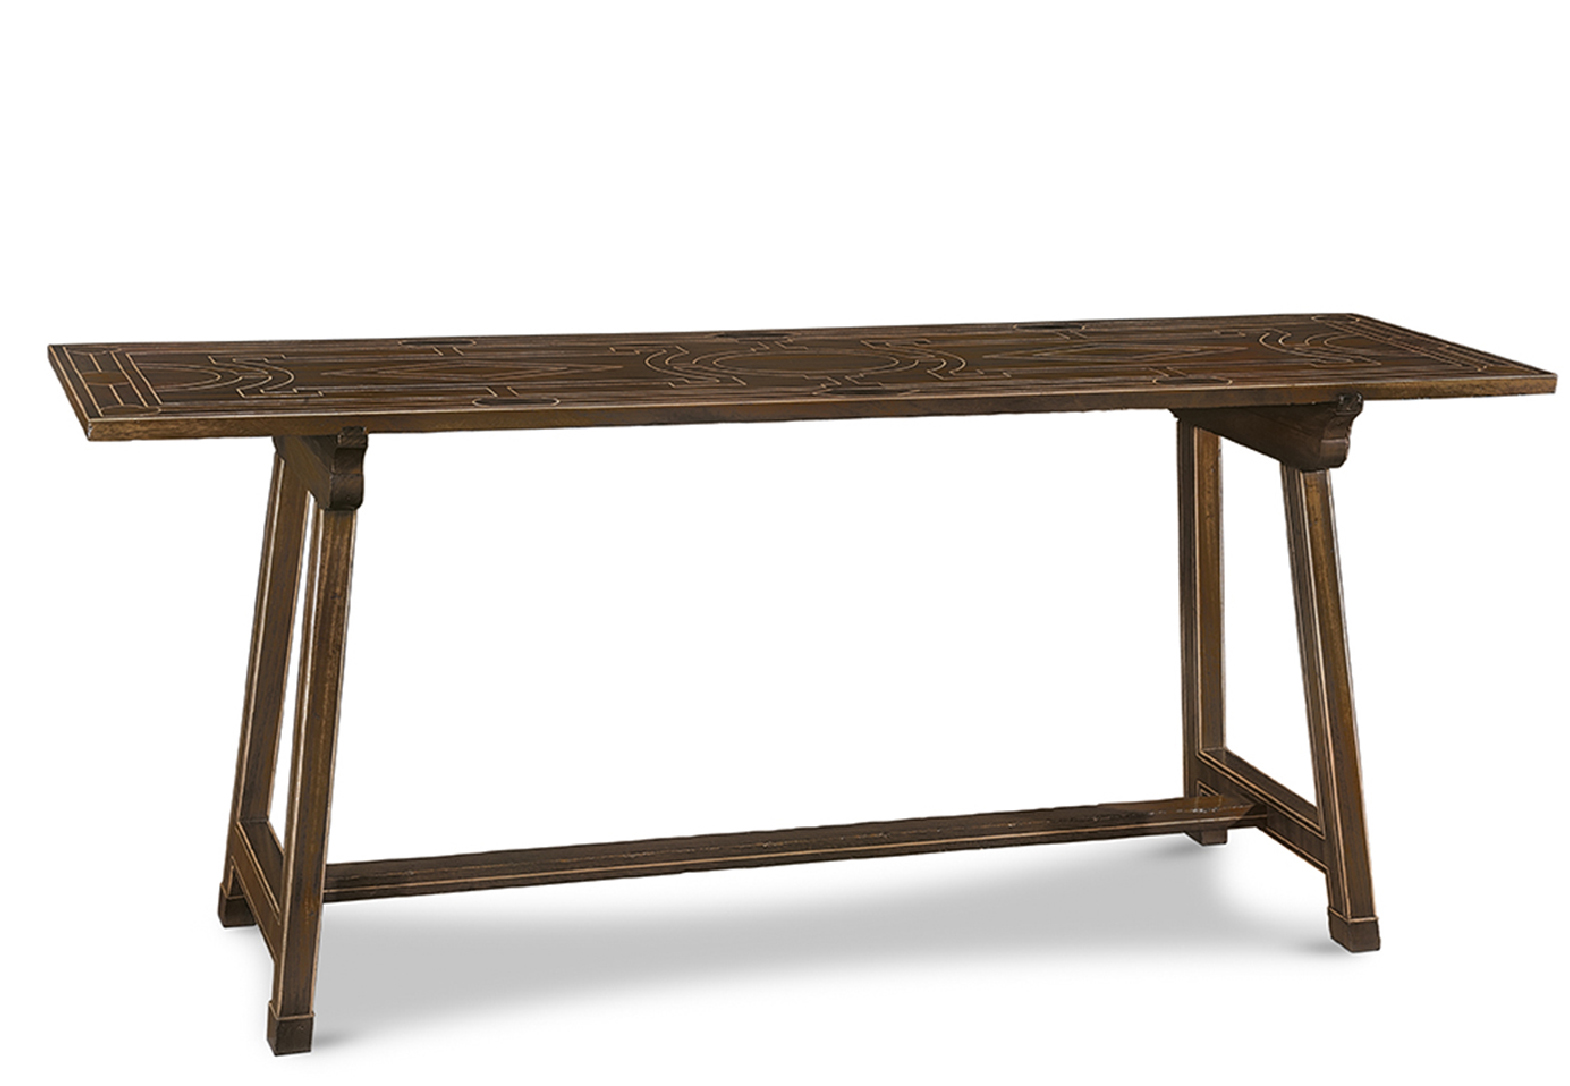 GENEVE SOFA TABLE